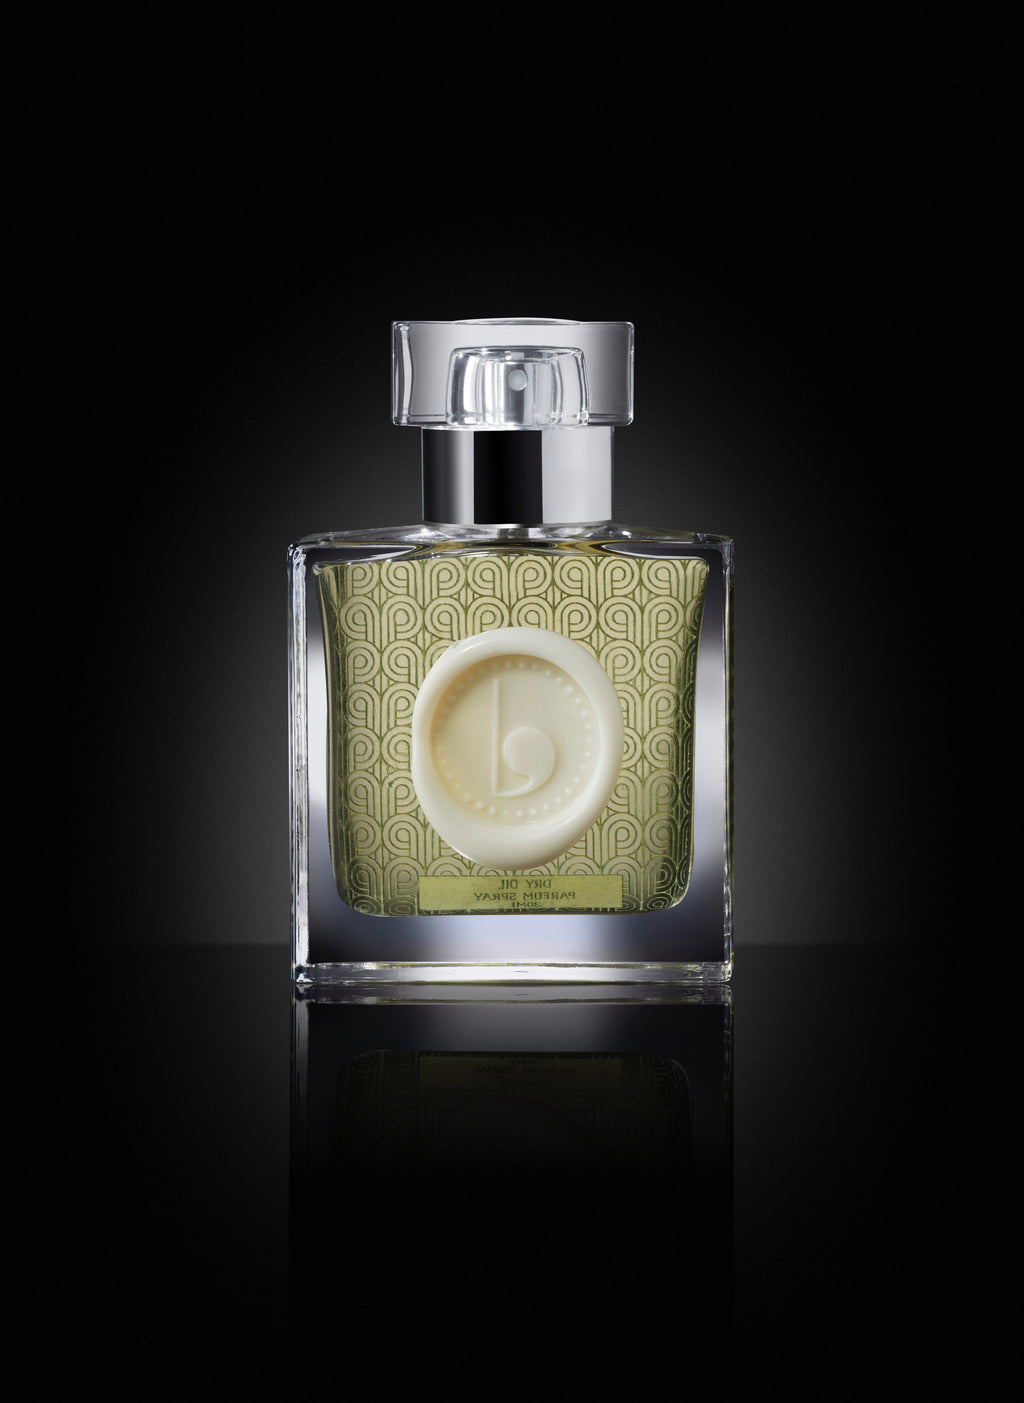 DRY OIL PARFUM: VIA BLANCA